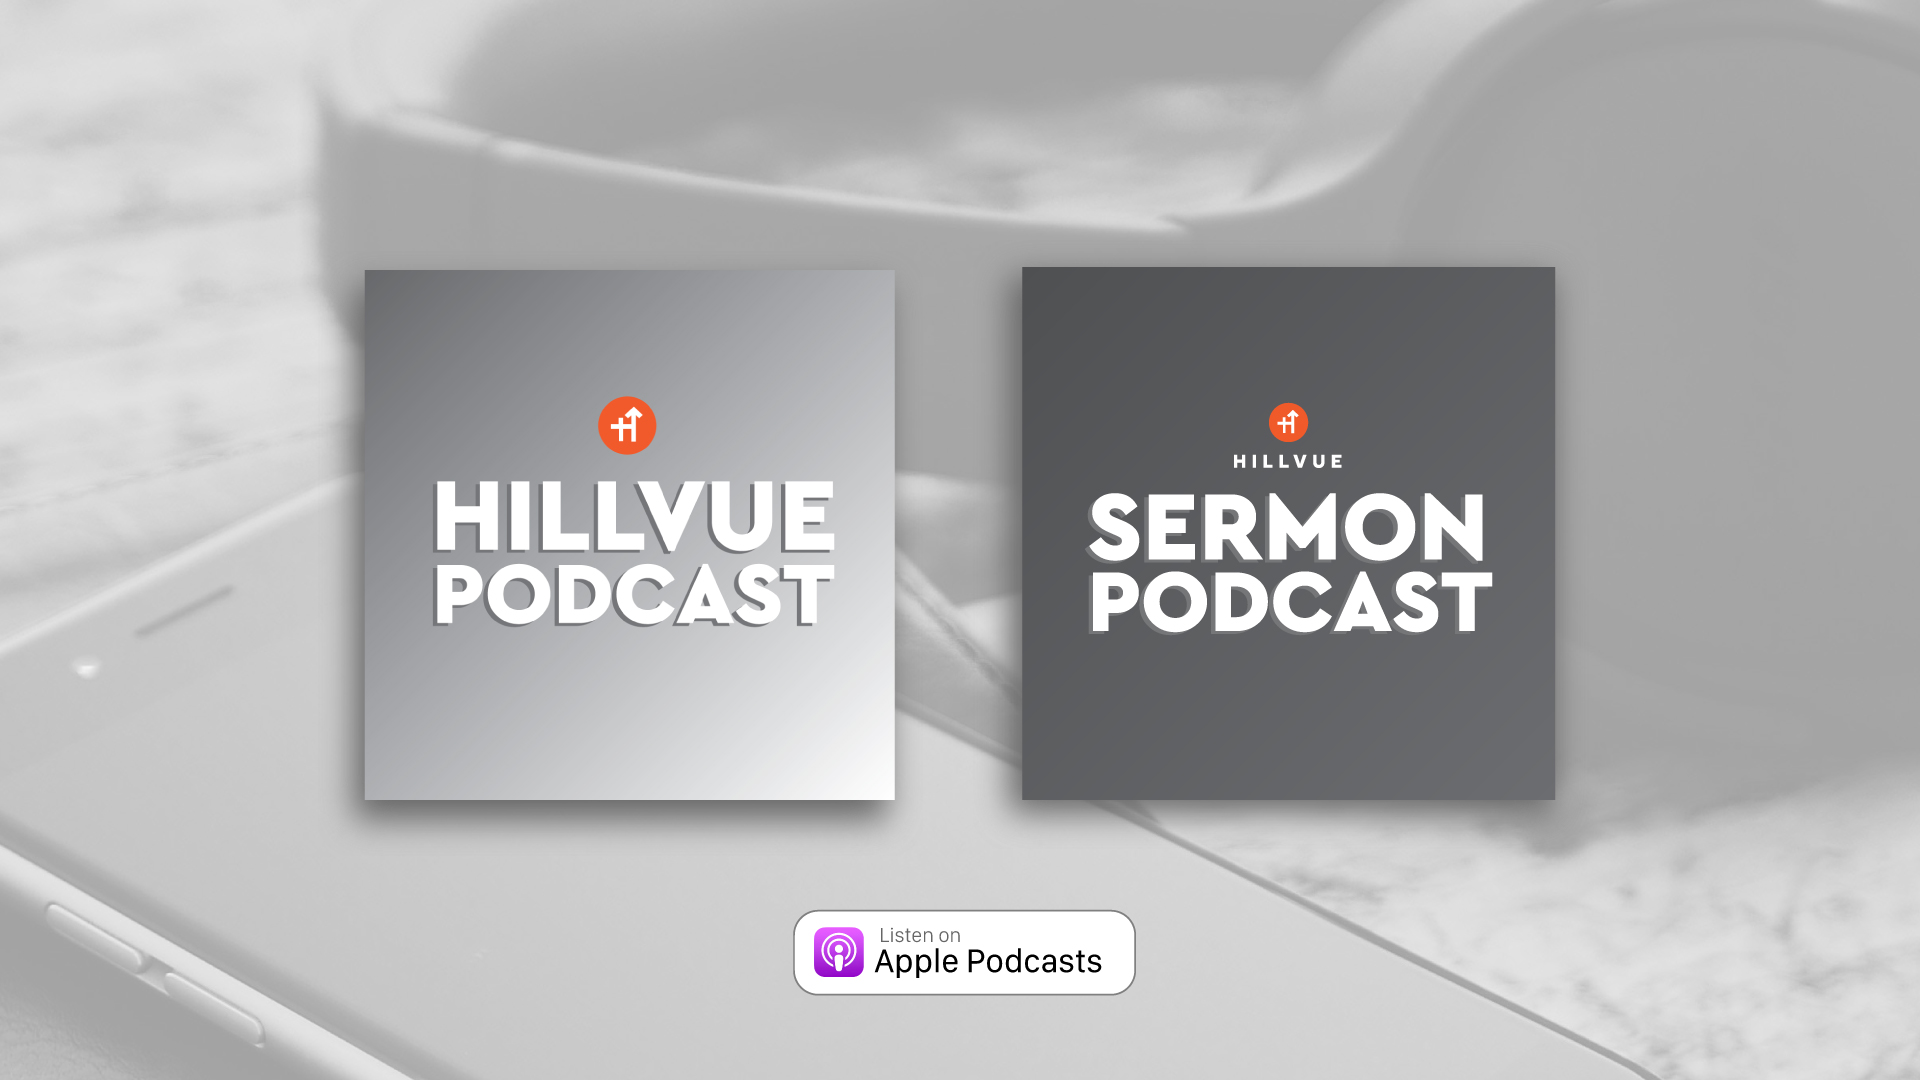 sermon-podcast-ad.JPG